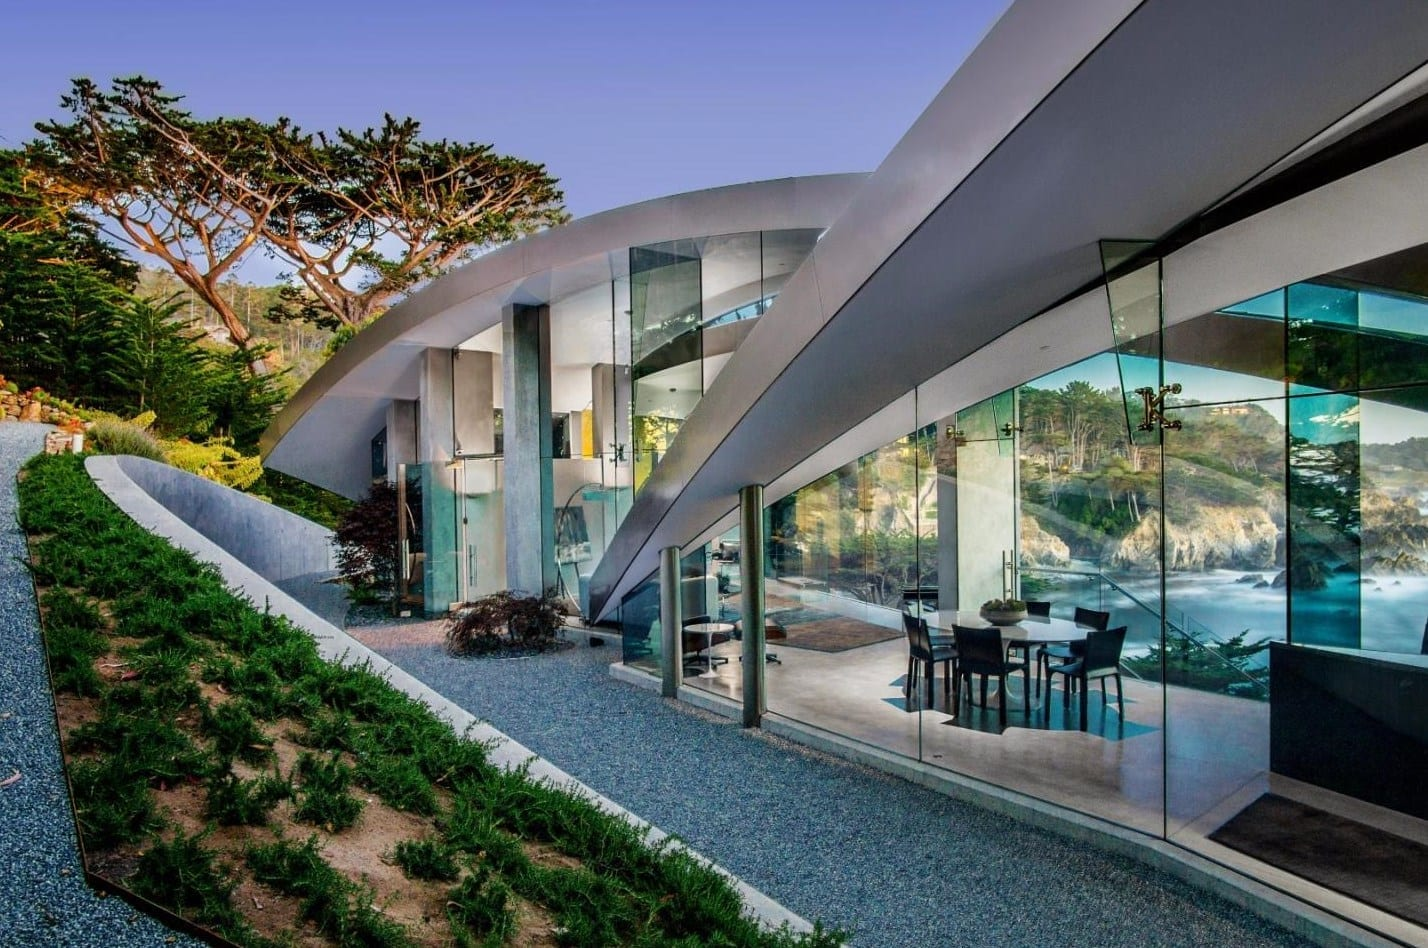 East elevation of Serenity residence by Wallace E. Cunningham.